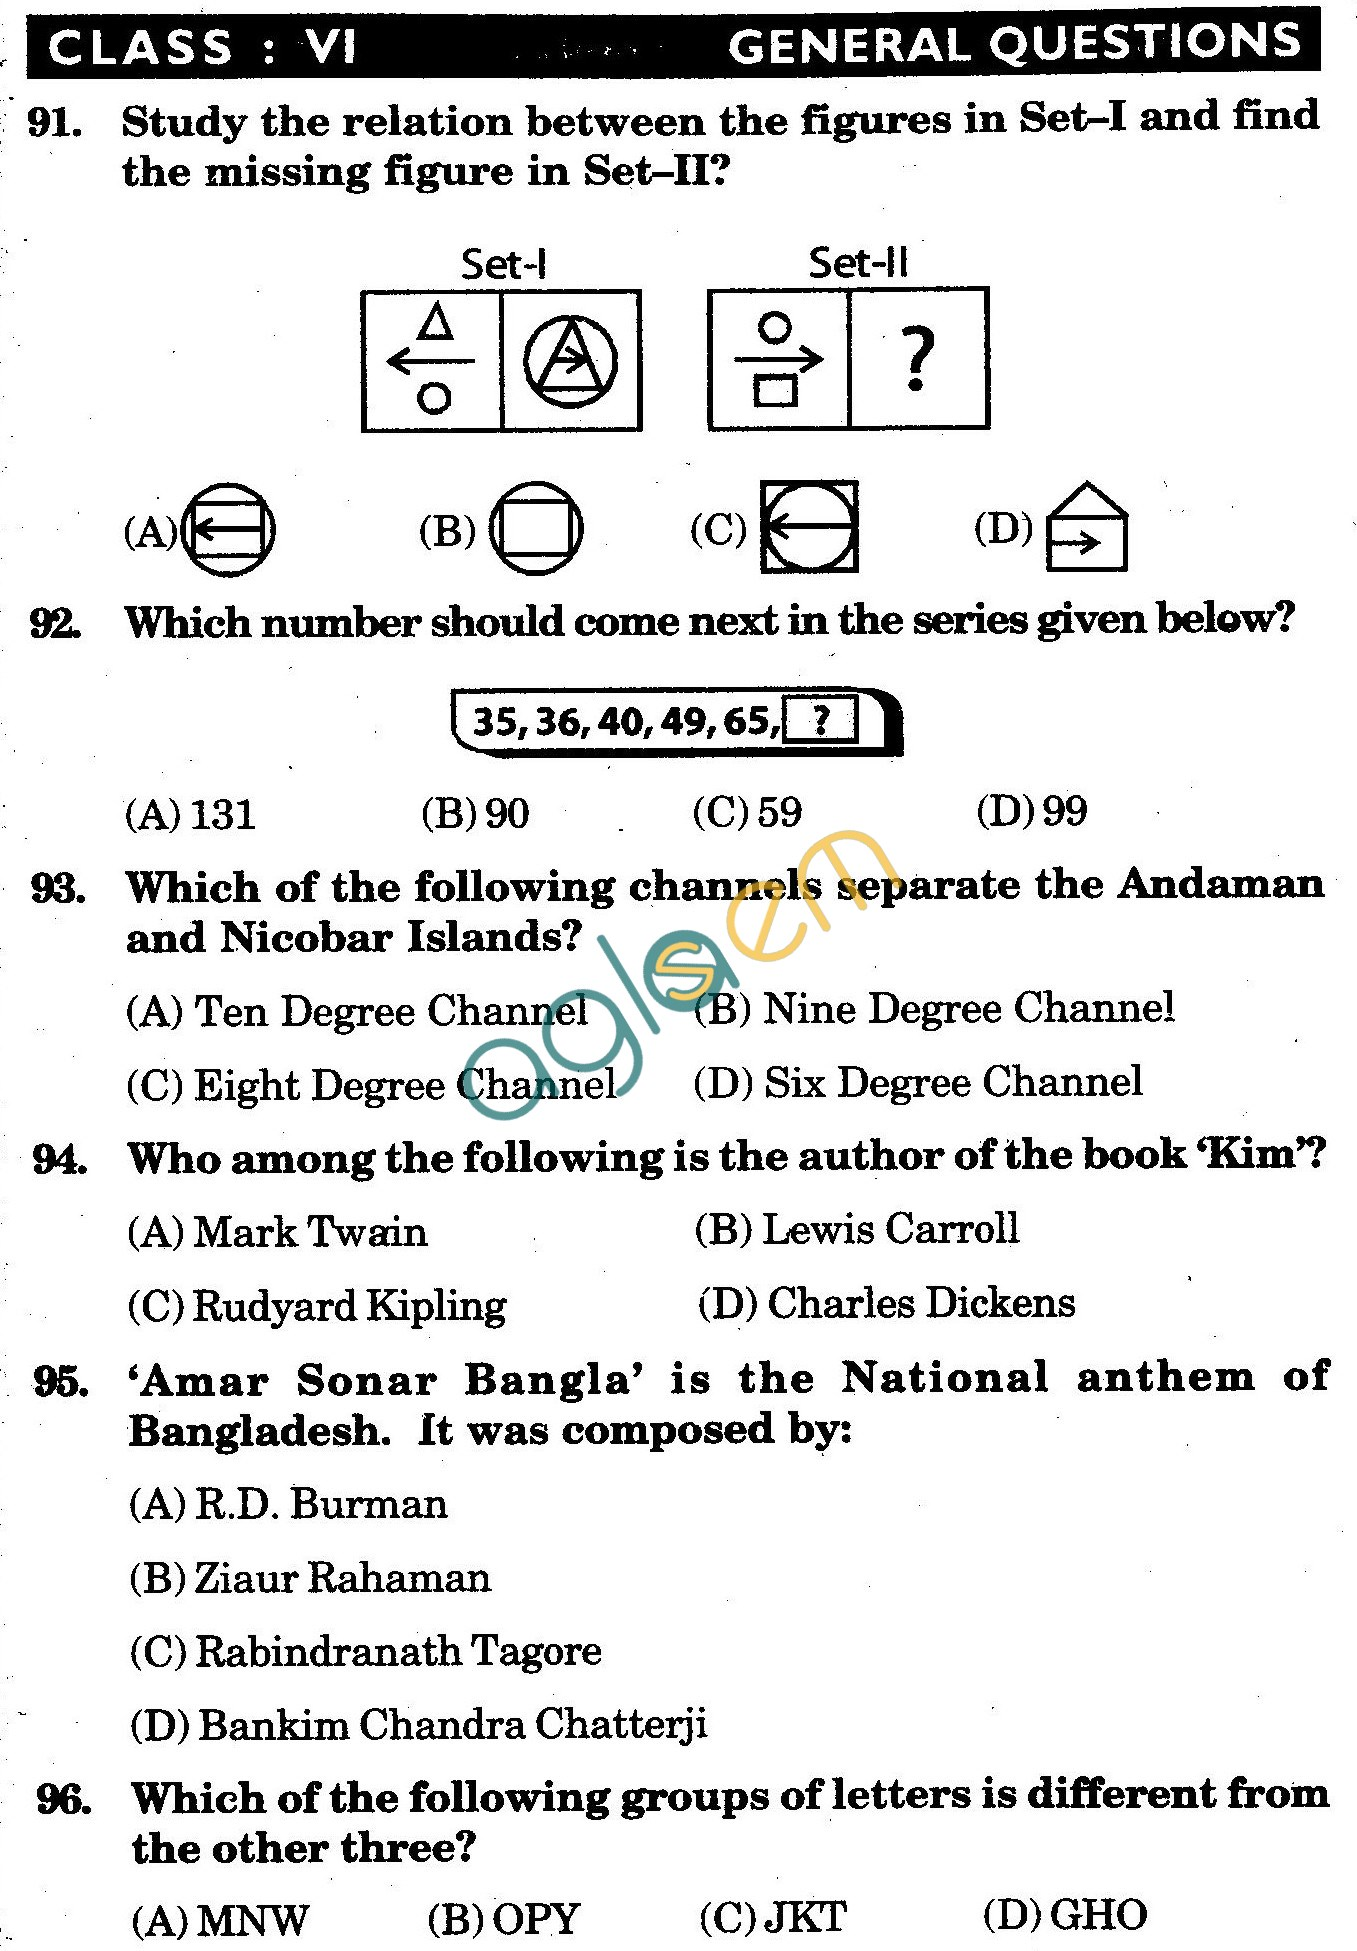 NSTSE 2010 Class VI Question Paper with Answers - General Knowledge